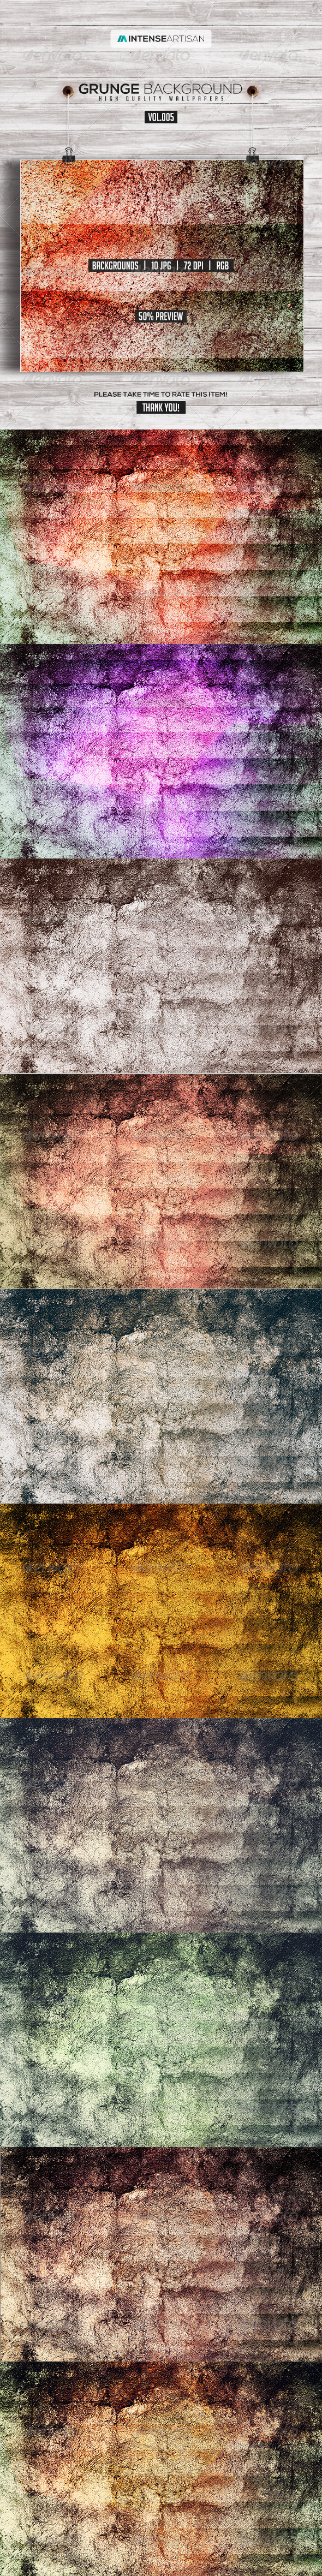 GraphicRiver 10 Grunge Background Vol.5 8307489